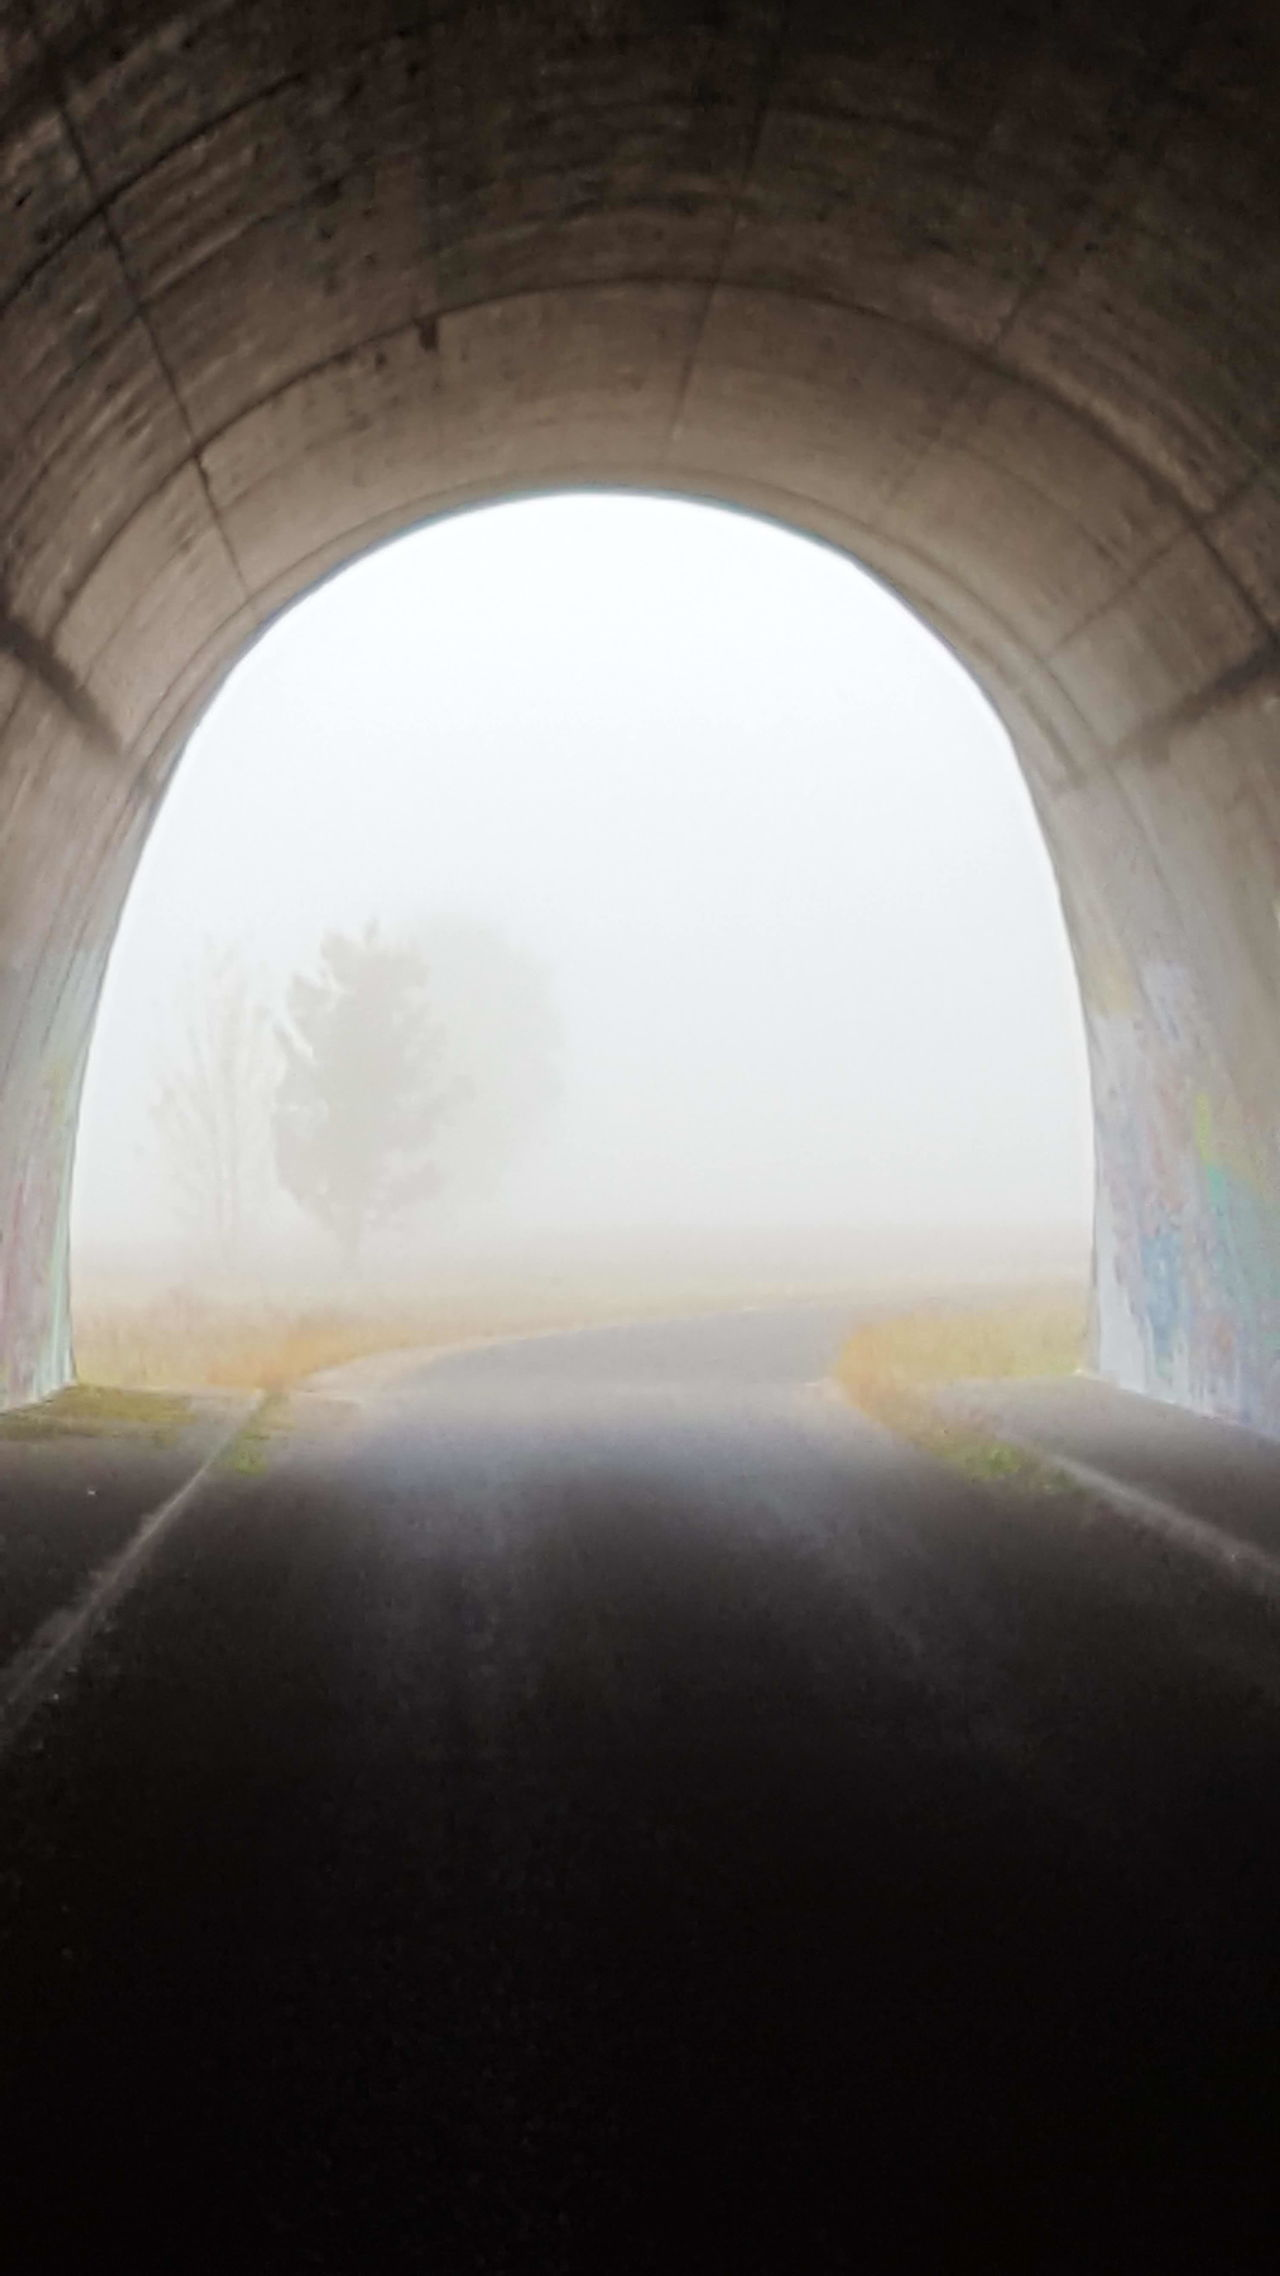 Vertical Transportation Arch Window Tunnel Built Structure Road Day Indoors  Cloud - Sky Sky Architecture Bridge - Man Made Structure Nature No People Fog Popular From My Point Of View Mobilephotography Getting Inspired Beauty In Nature Eye4photography  Landscape_photography Way To Nowhere Silhouette